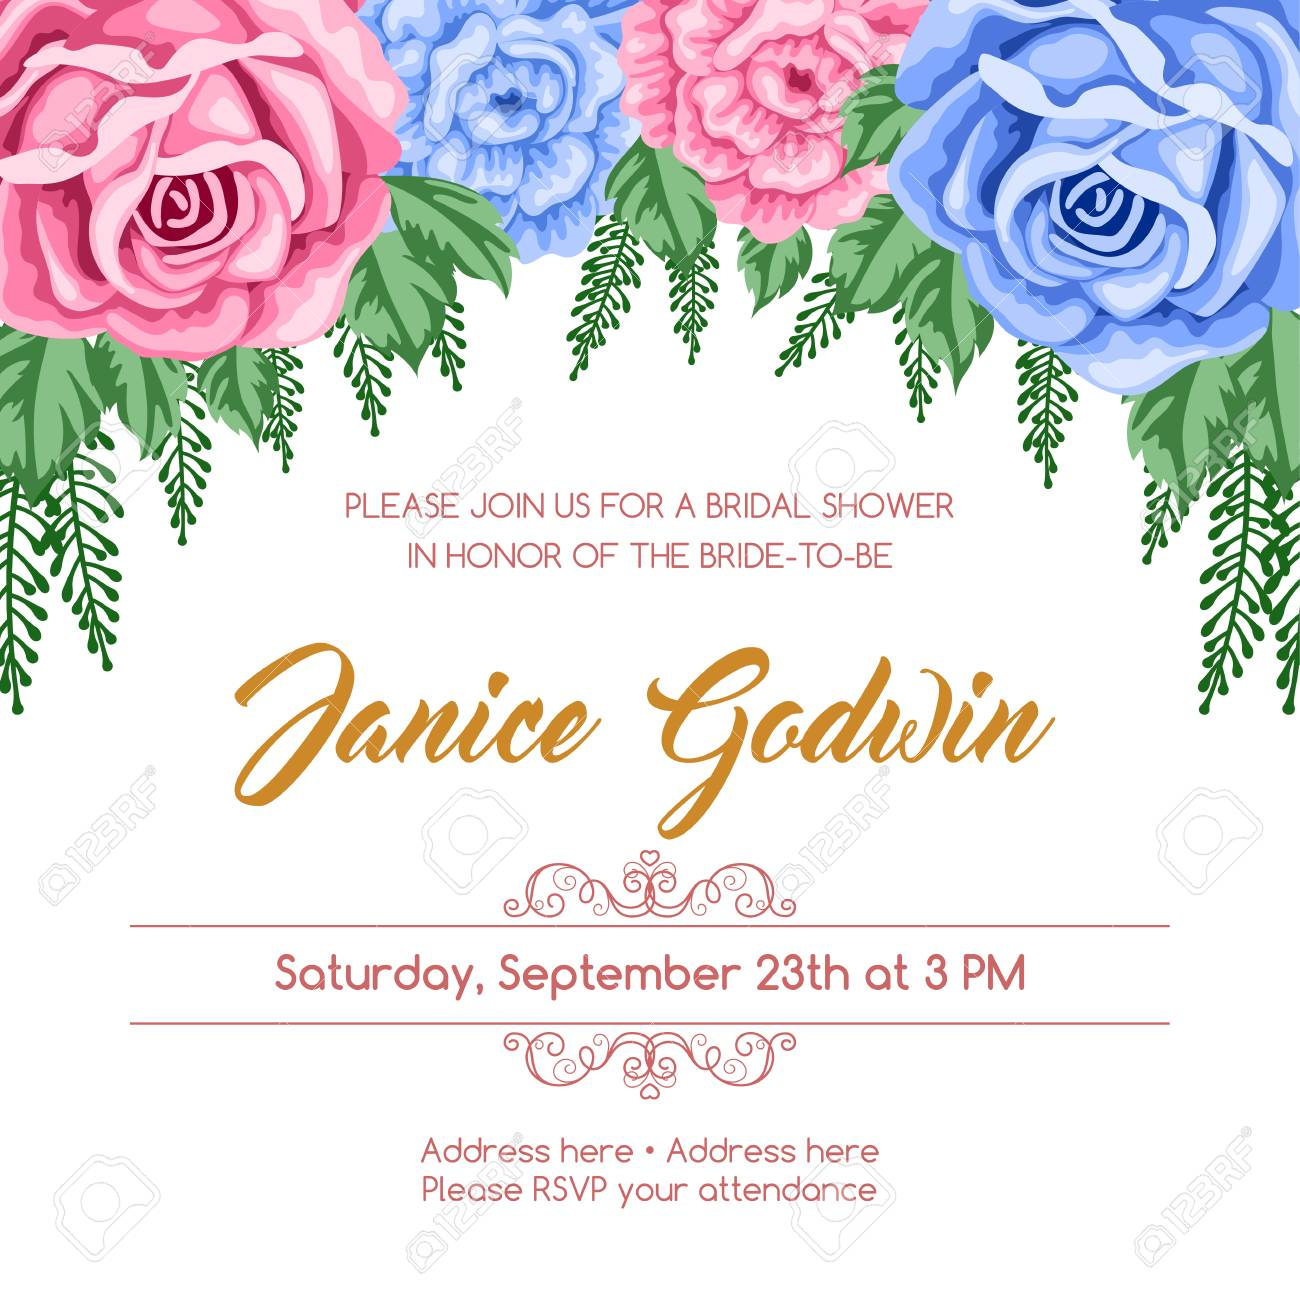 Bridal shower invitation template with flowers vector illustration bridal shower invitation template with flowers vector illustration in retro style stock vector 79077495 filmwisefo